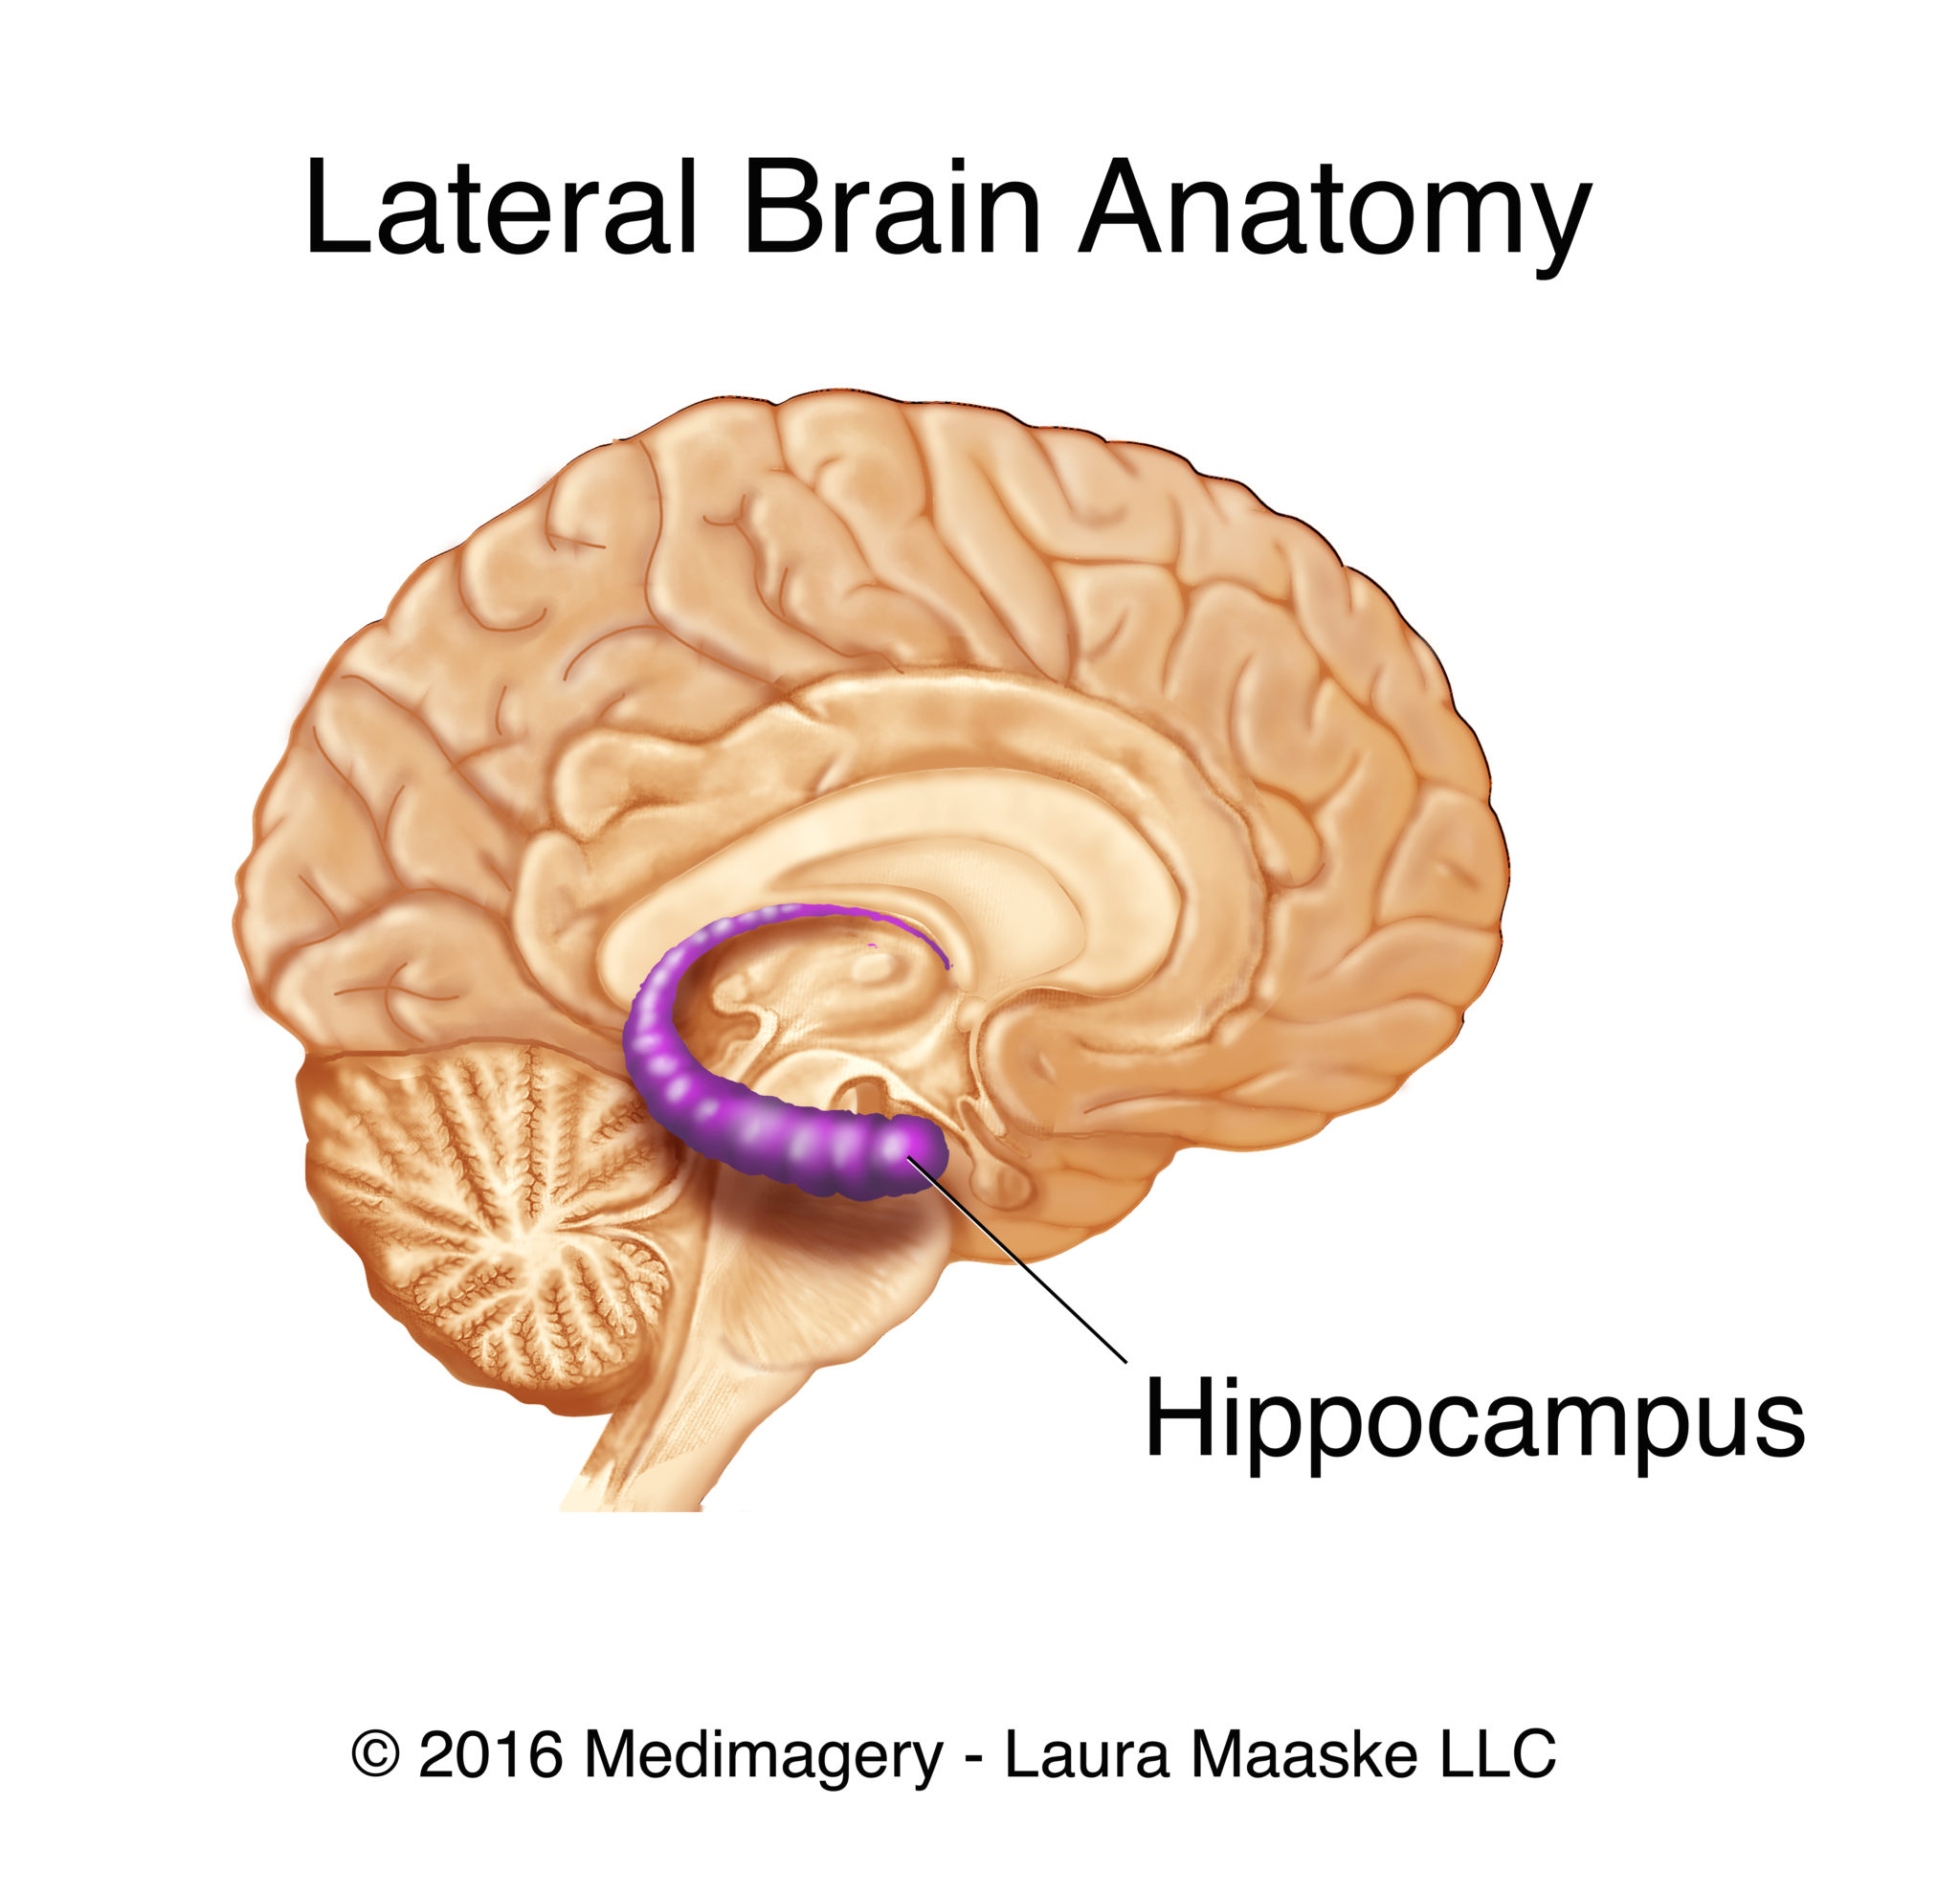 brain anatomy Archives - Medical Illustrations & Animations by Laura ...